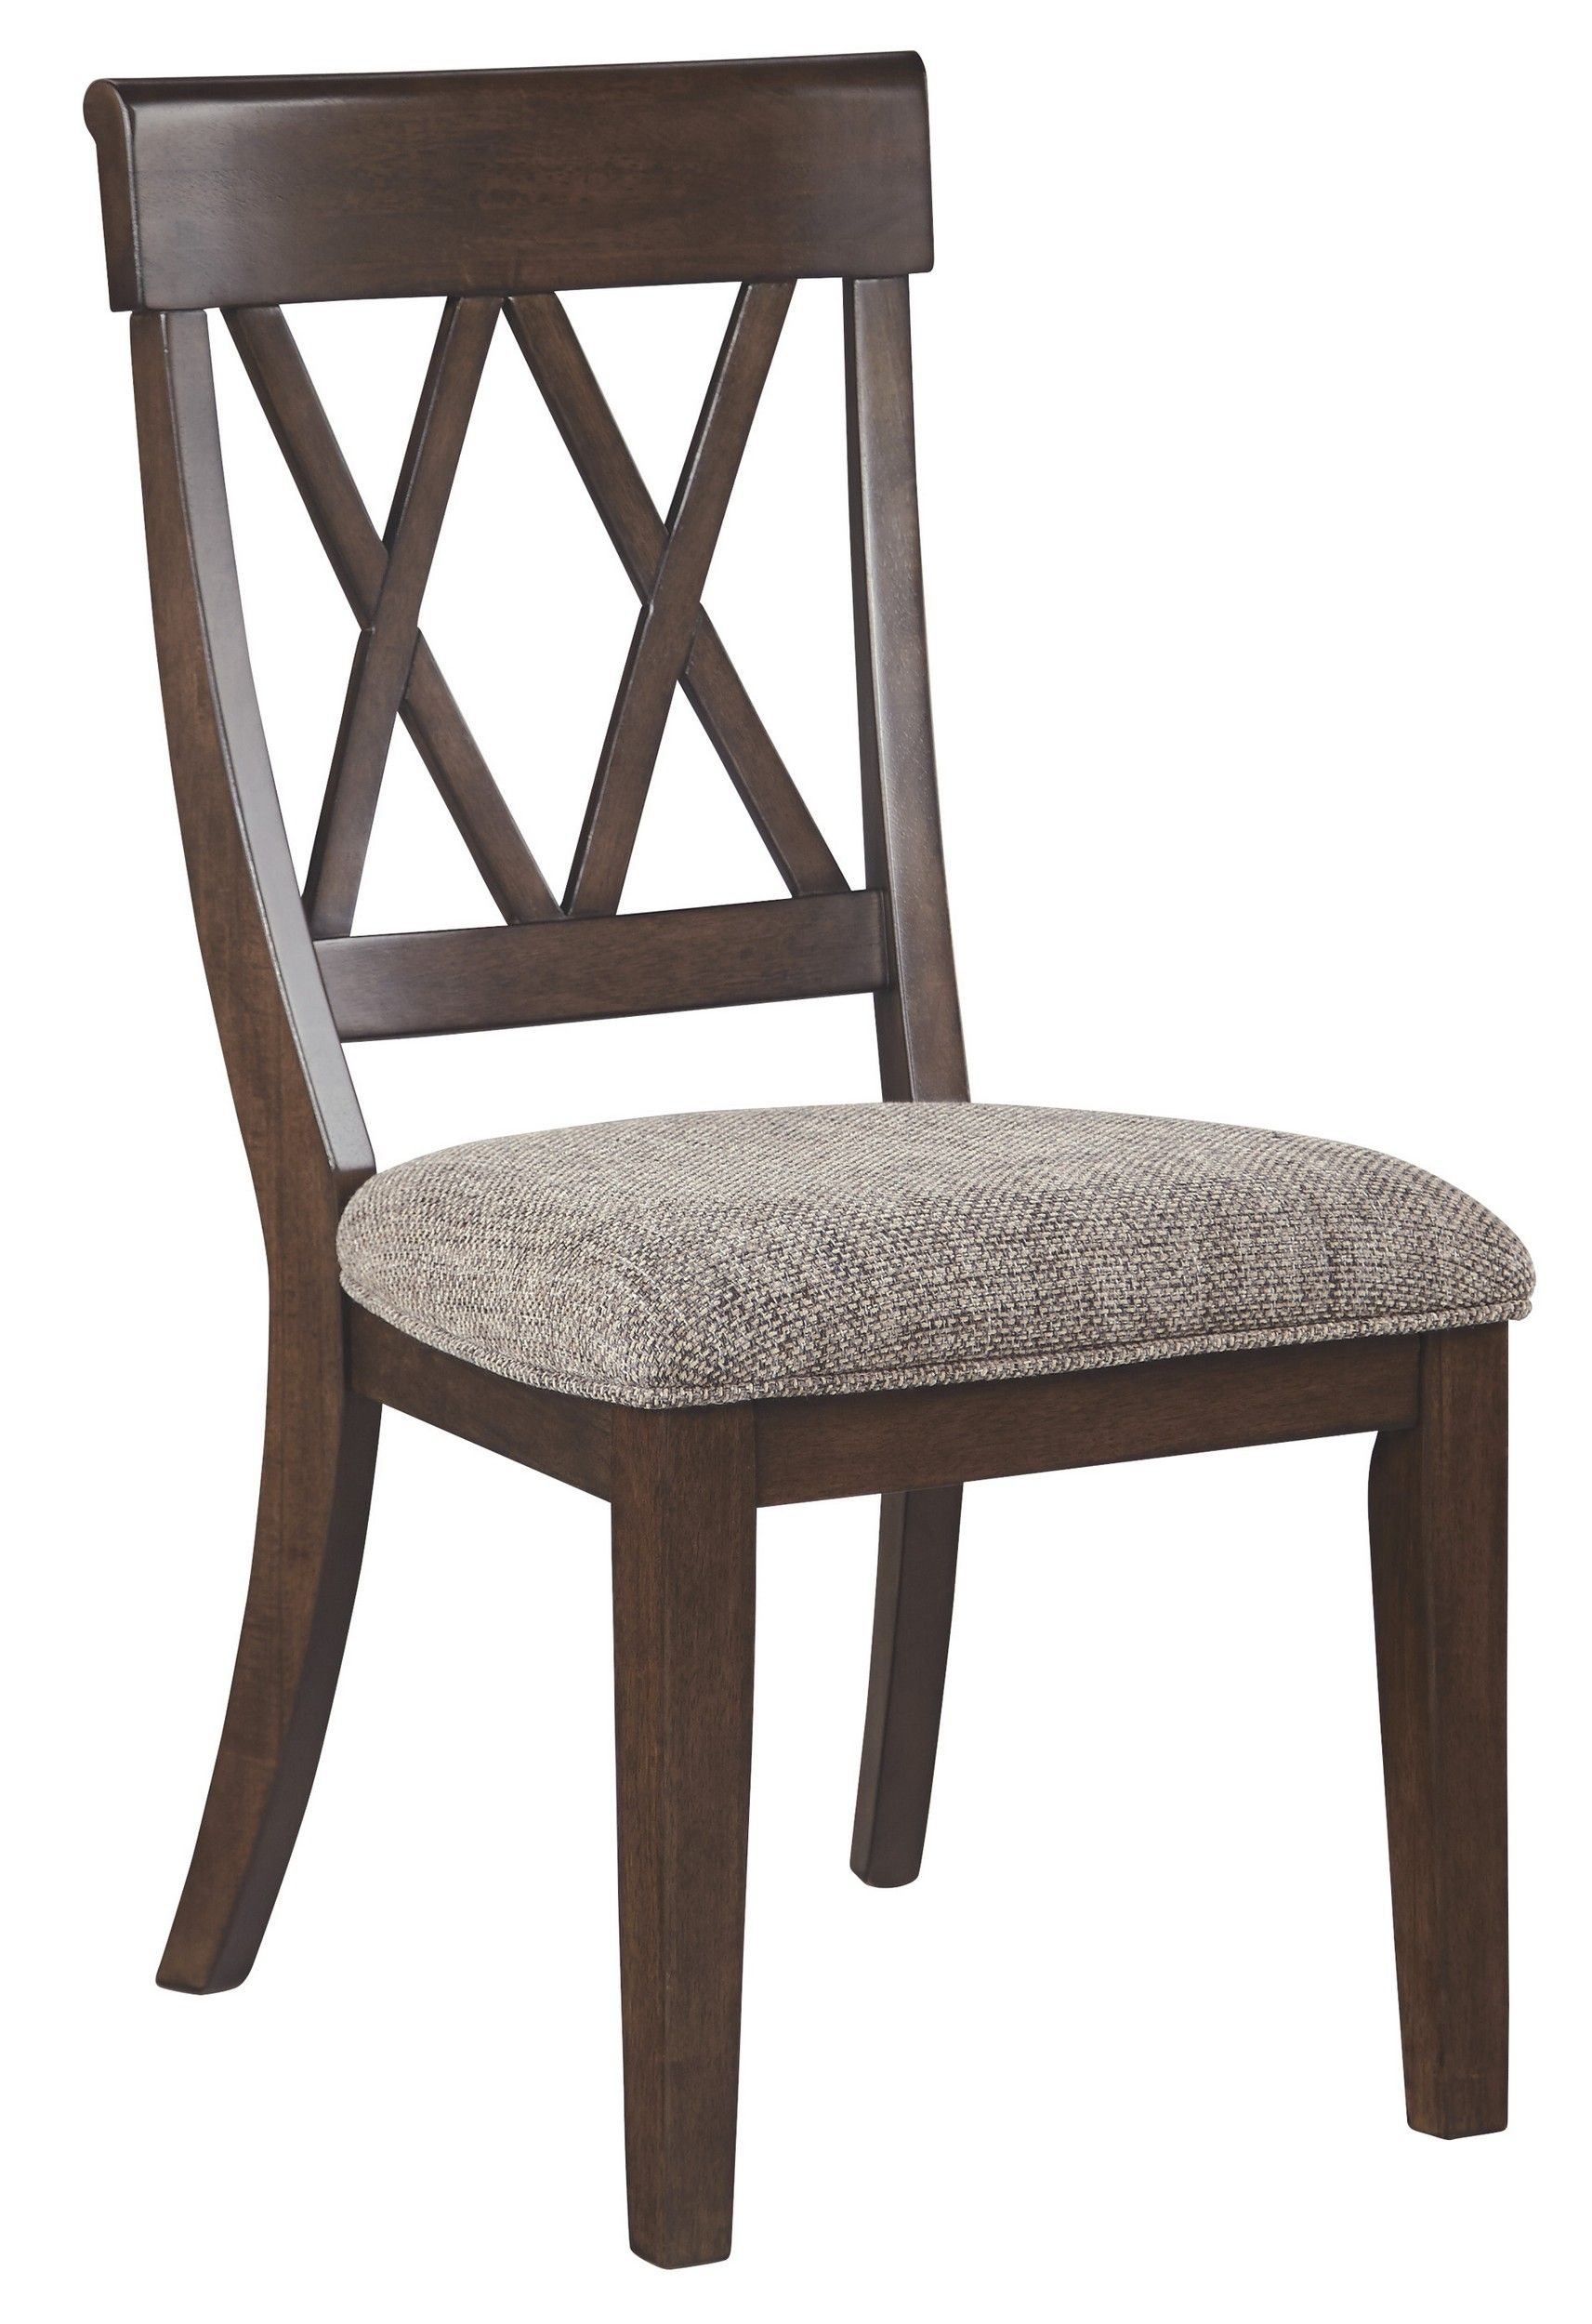 signature design by ashley dining chairs on lowest price on signature design by ashley brossling brown dining side chair set of 2 d727 01 shop today dining chairs brown dining room ashley dining room pinterest